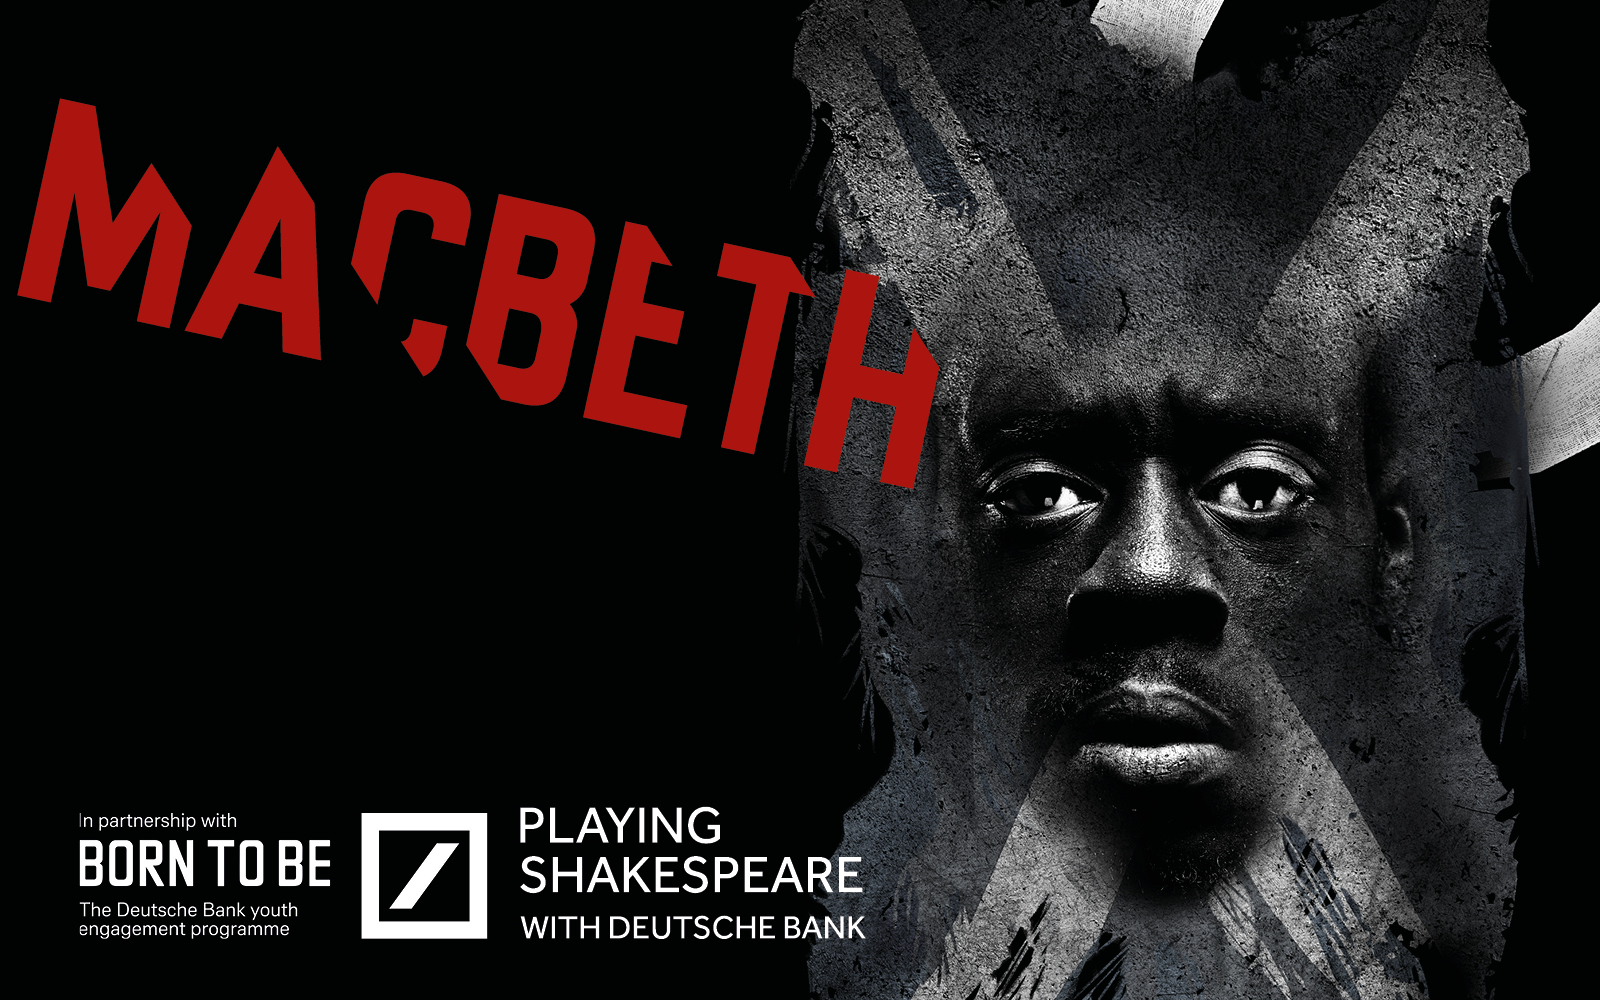 A graphic image of a man's face and the words Macbeth